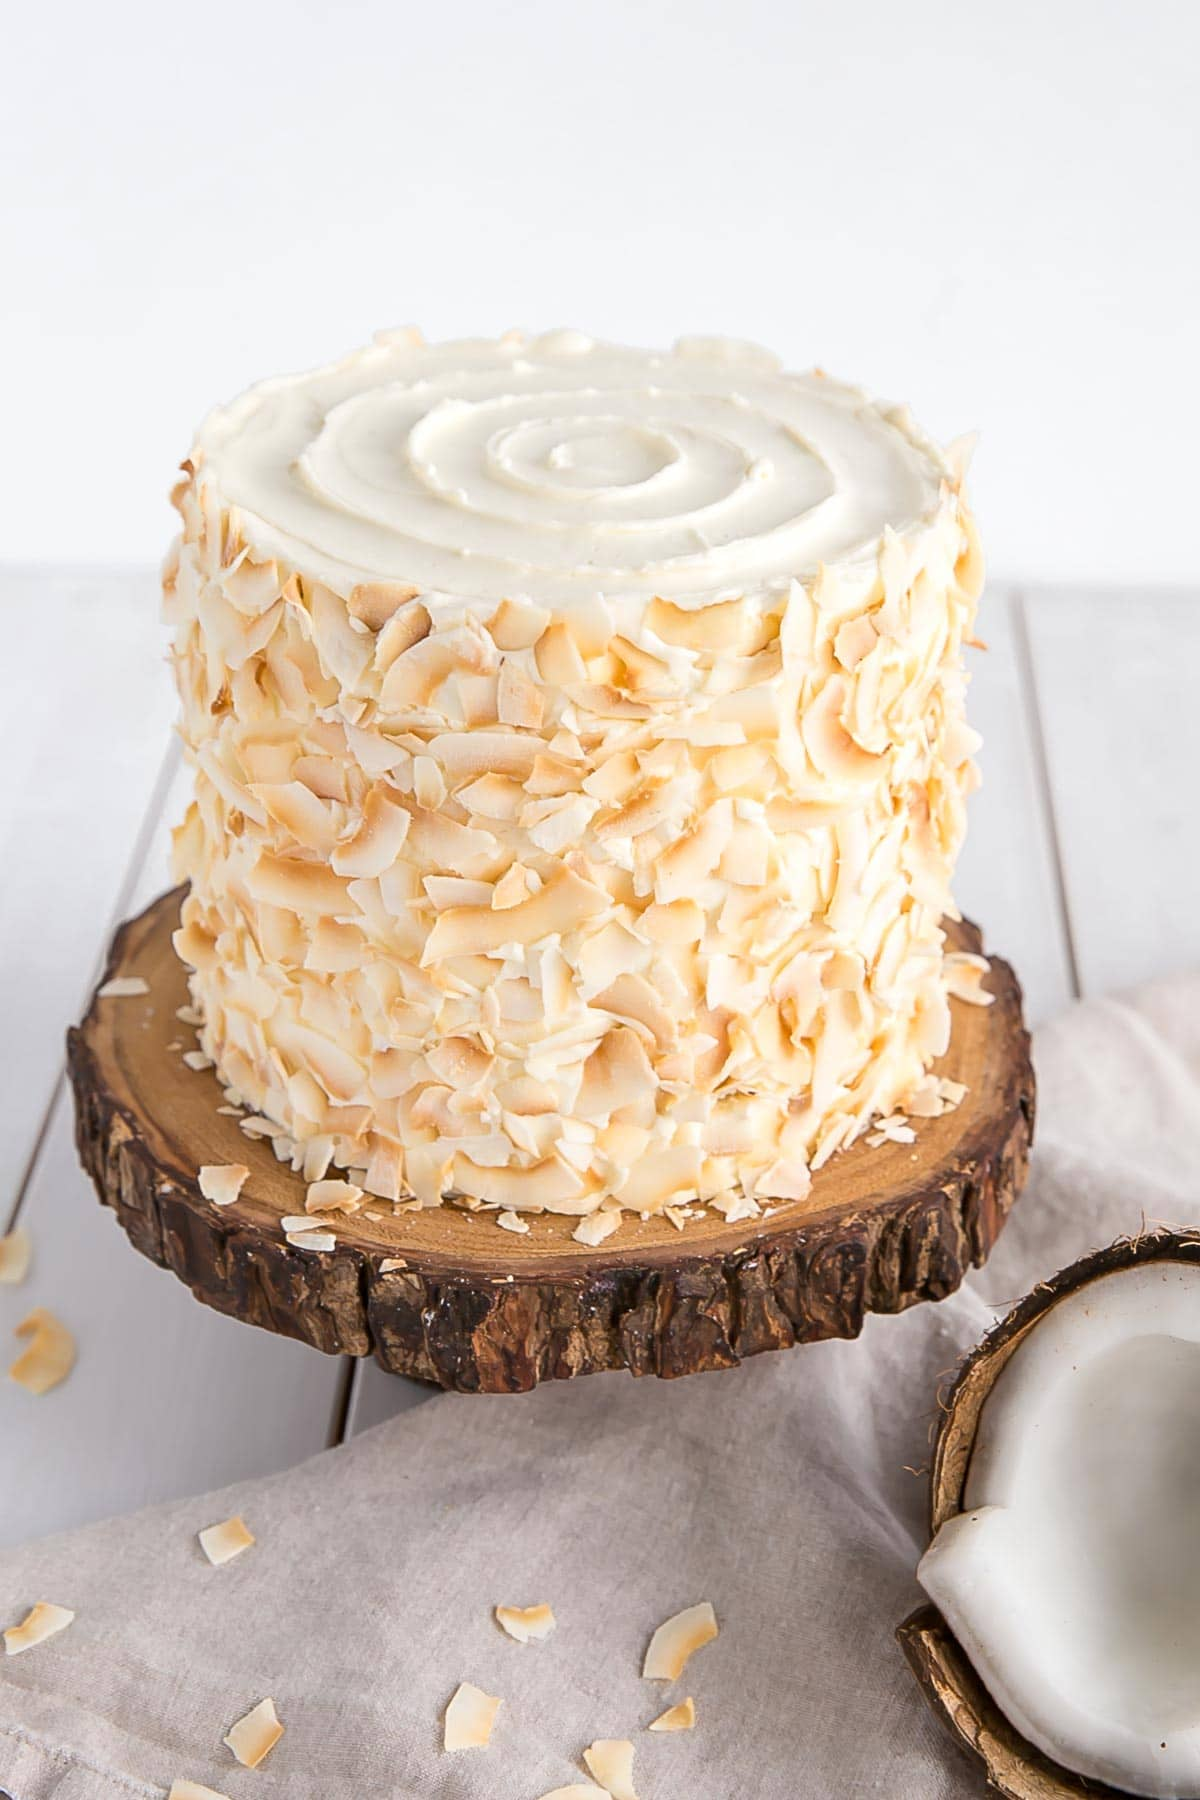 Homemade coconut cake decorated with toasted coconut and a swirl of frosting on the top.